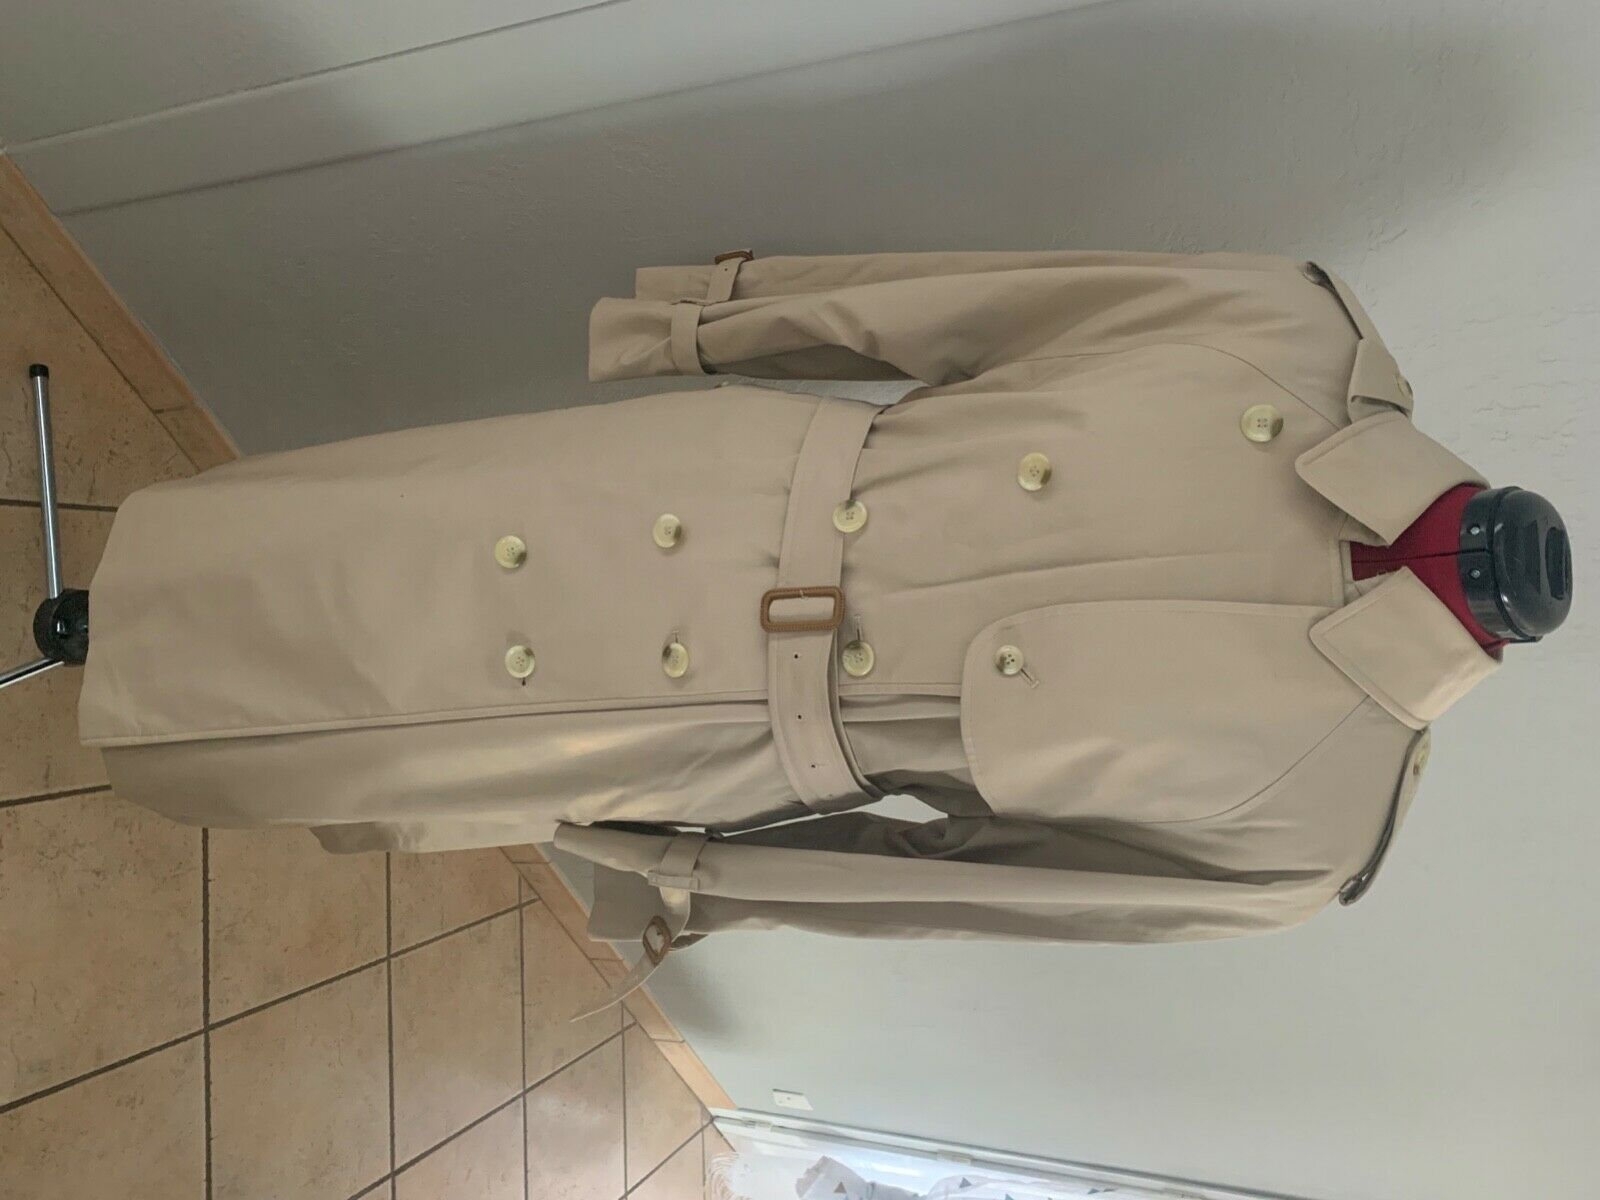 Superbe trench imperméable femme burberry t42-44